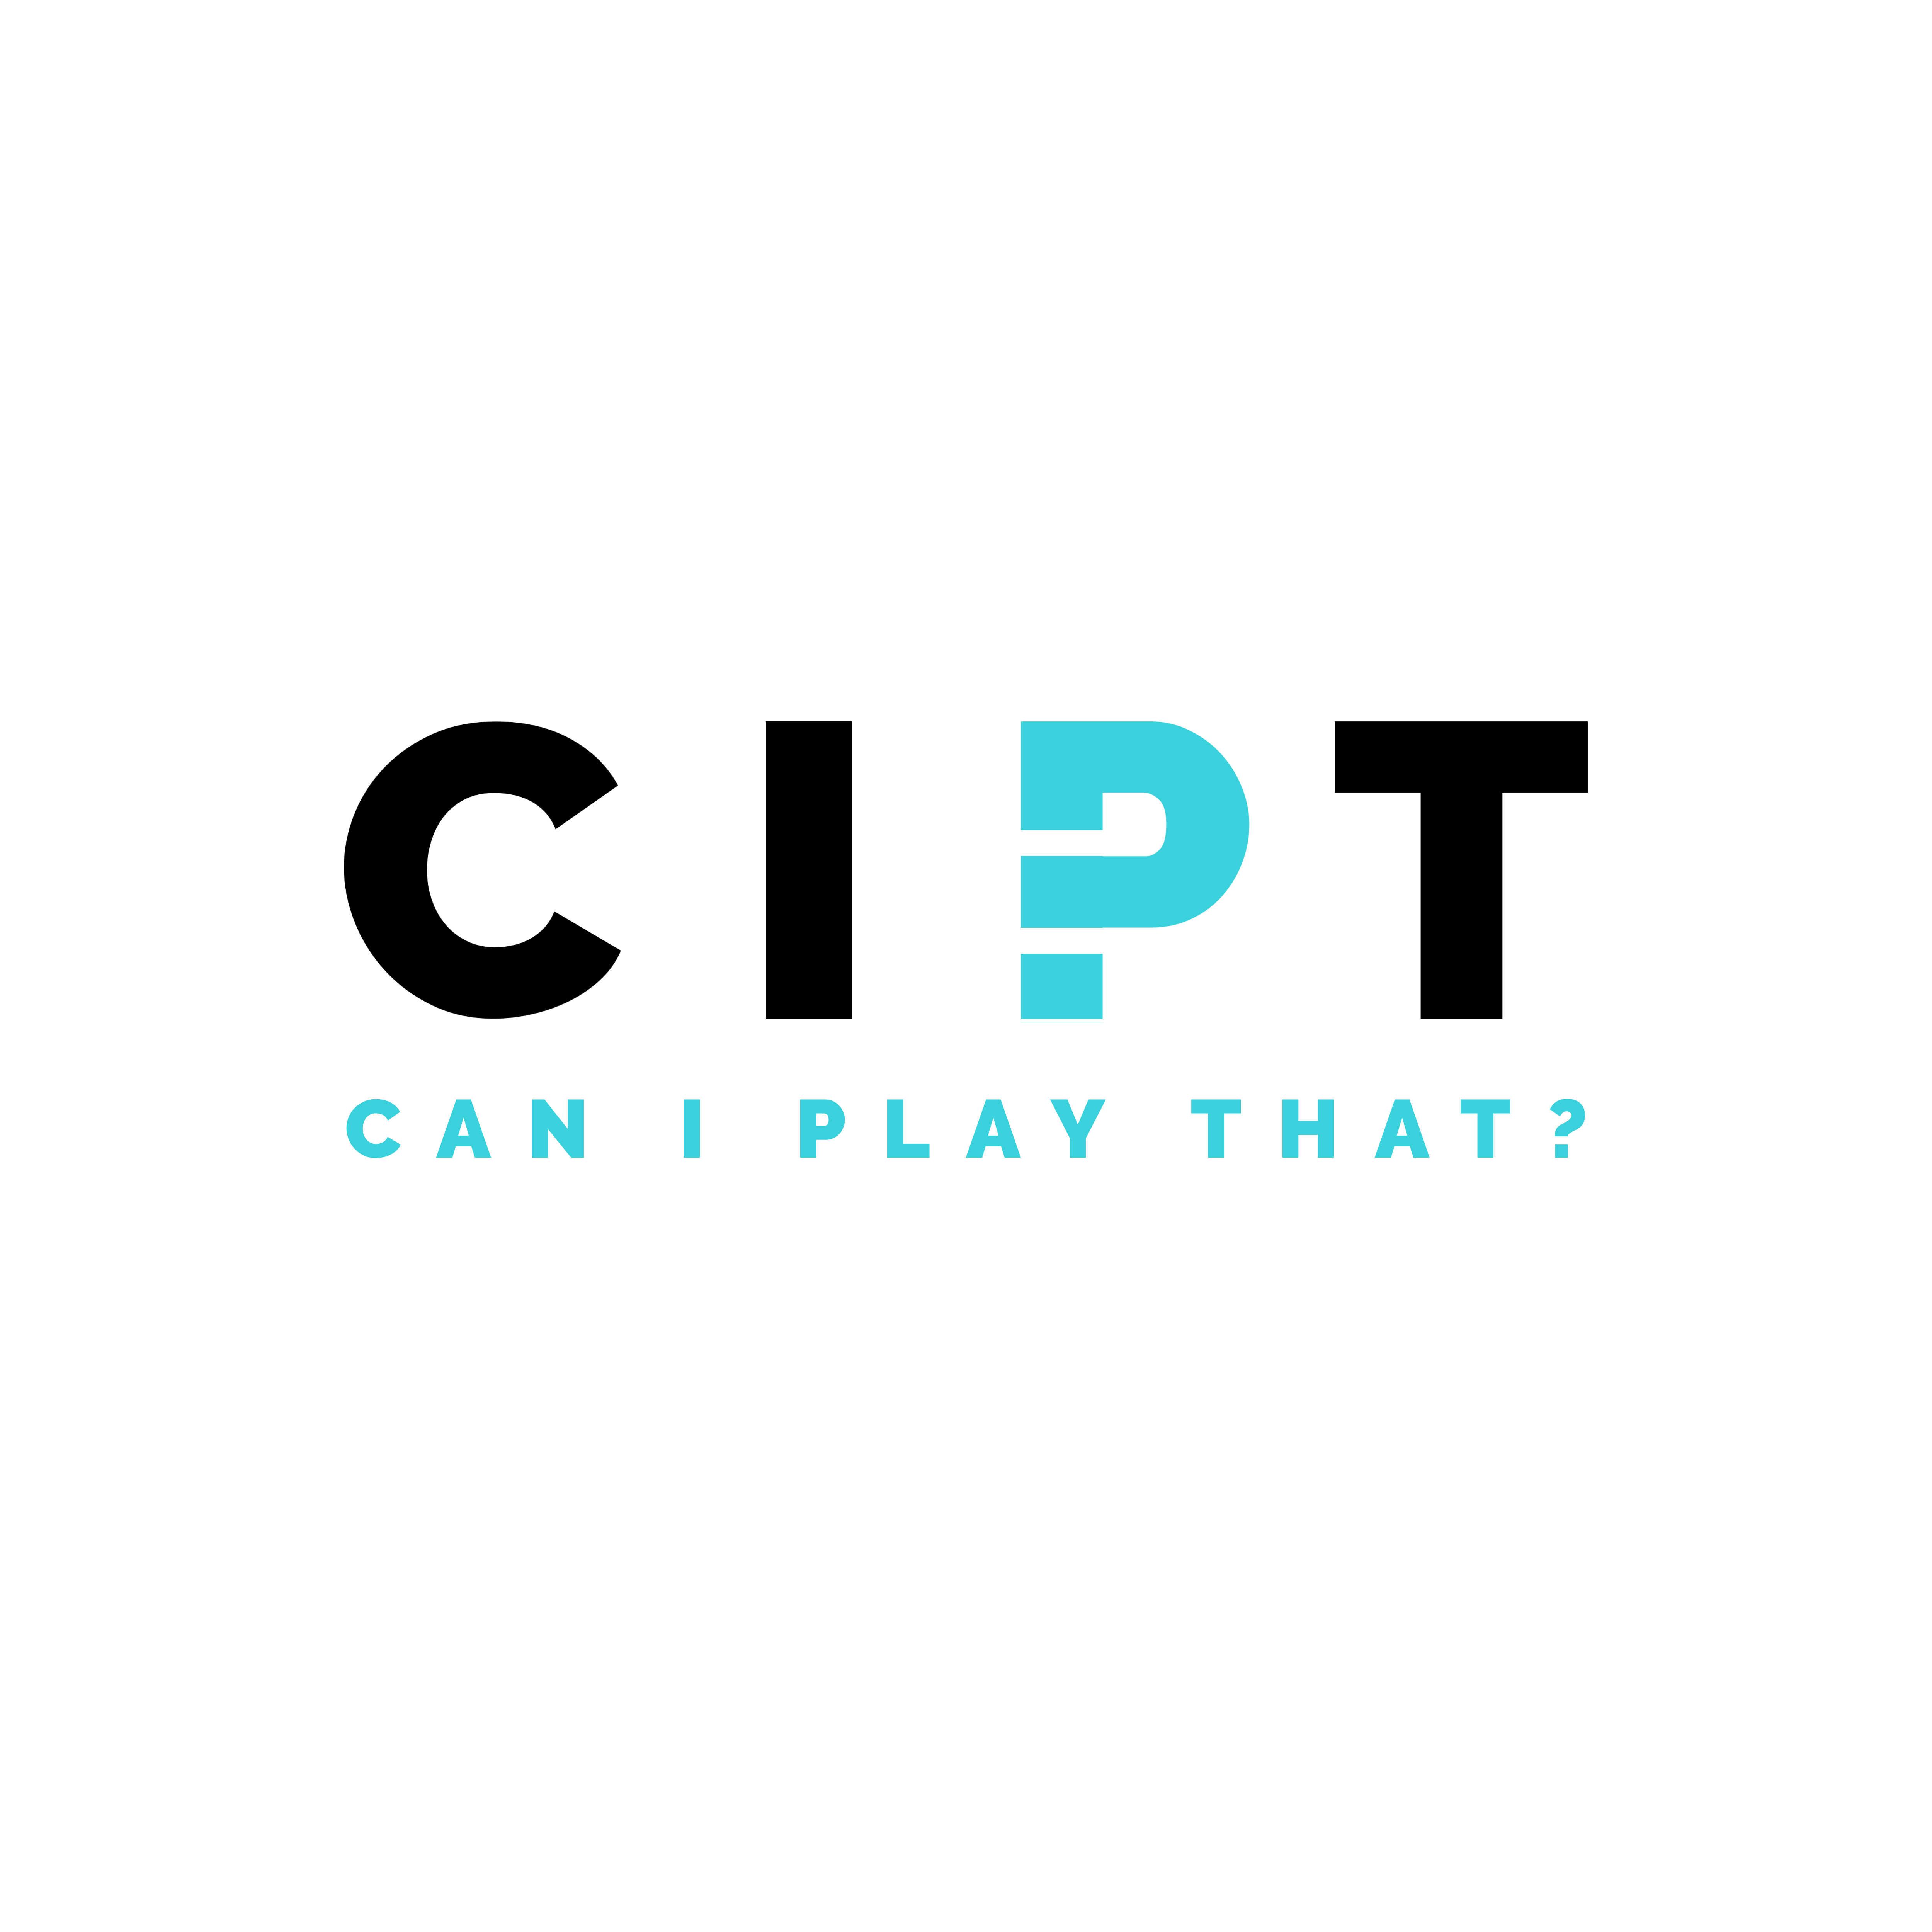 Can I play that?